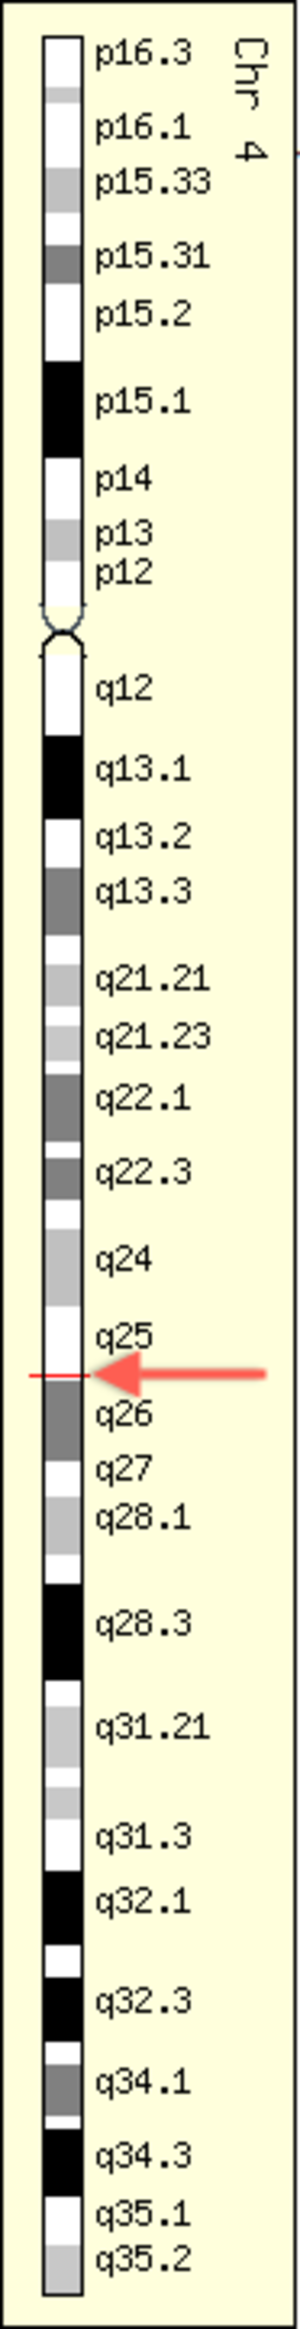 GeneCards - GeneCards showing C4orf21 Gene in genomic location: bands according to Ensembl, locations according to GenLoc. Red band indicates c4orf21 location (red arrow added for clarification).